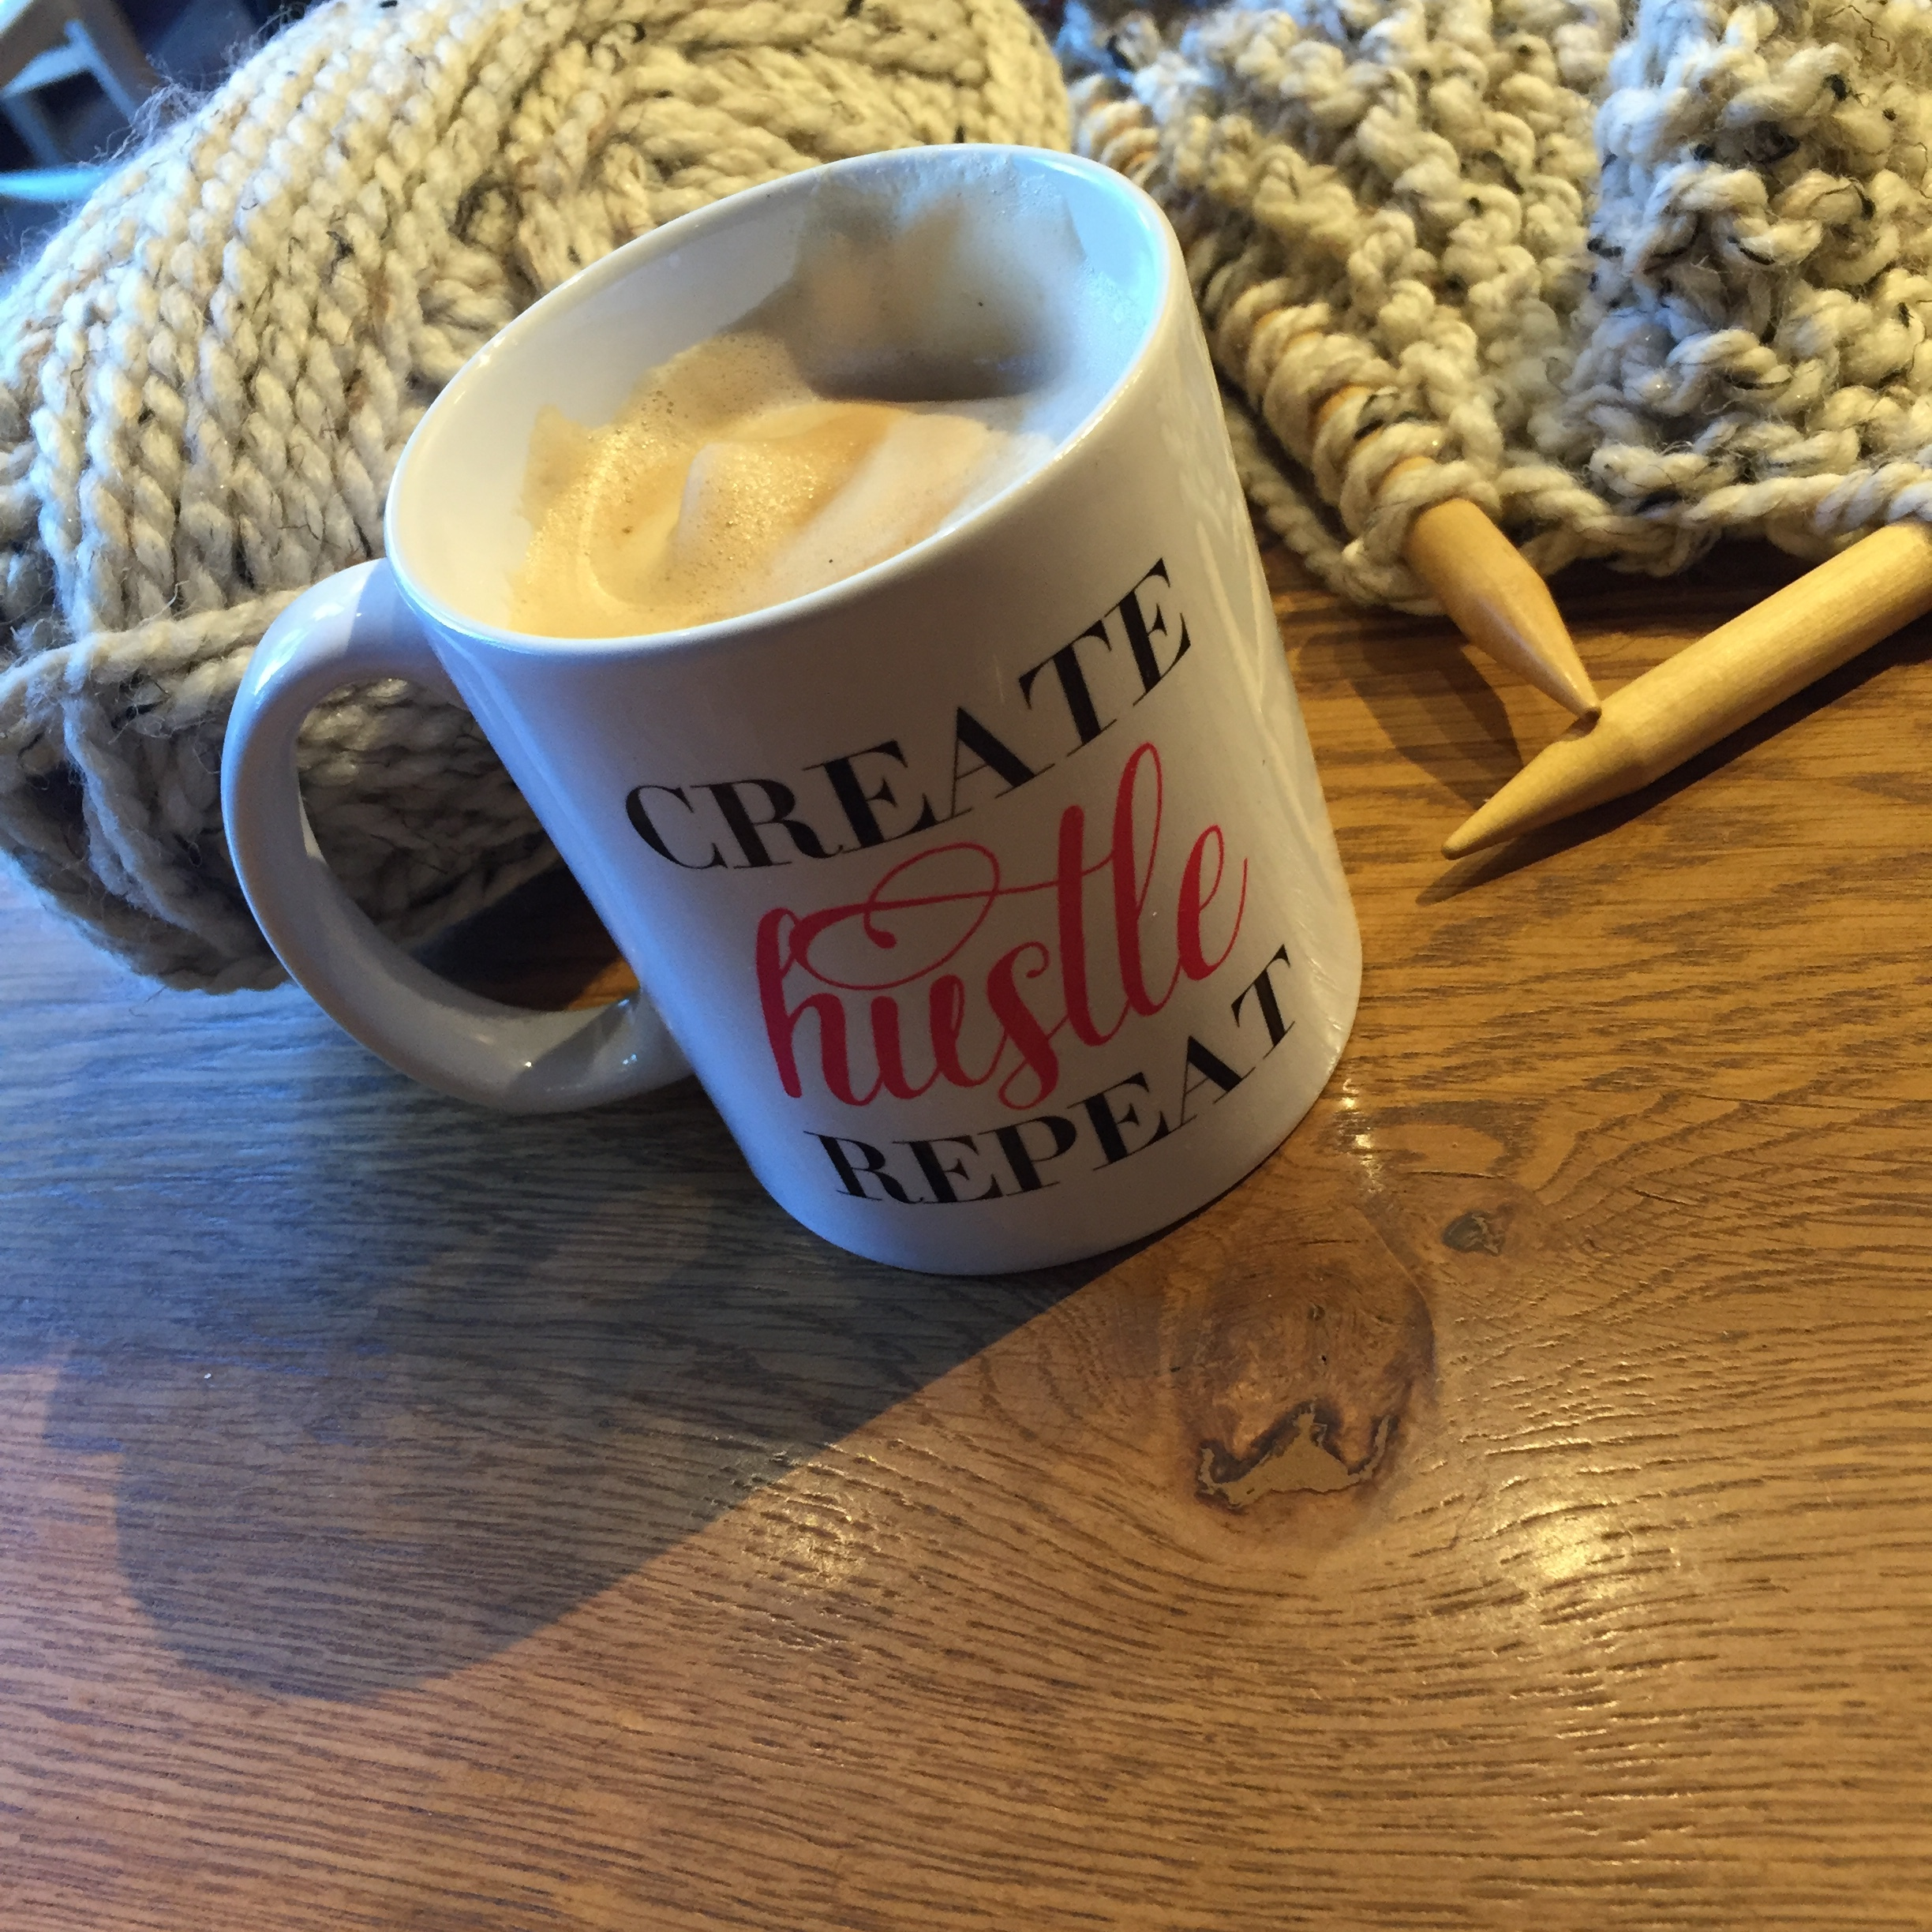 create-hustle-repeat-mug.jpg